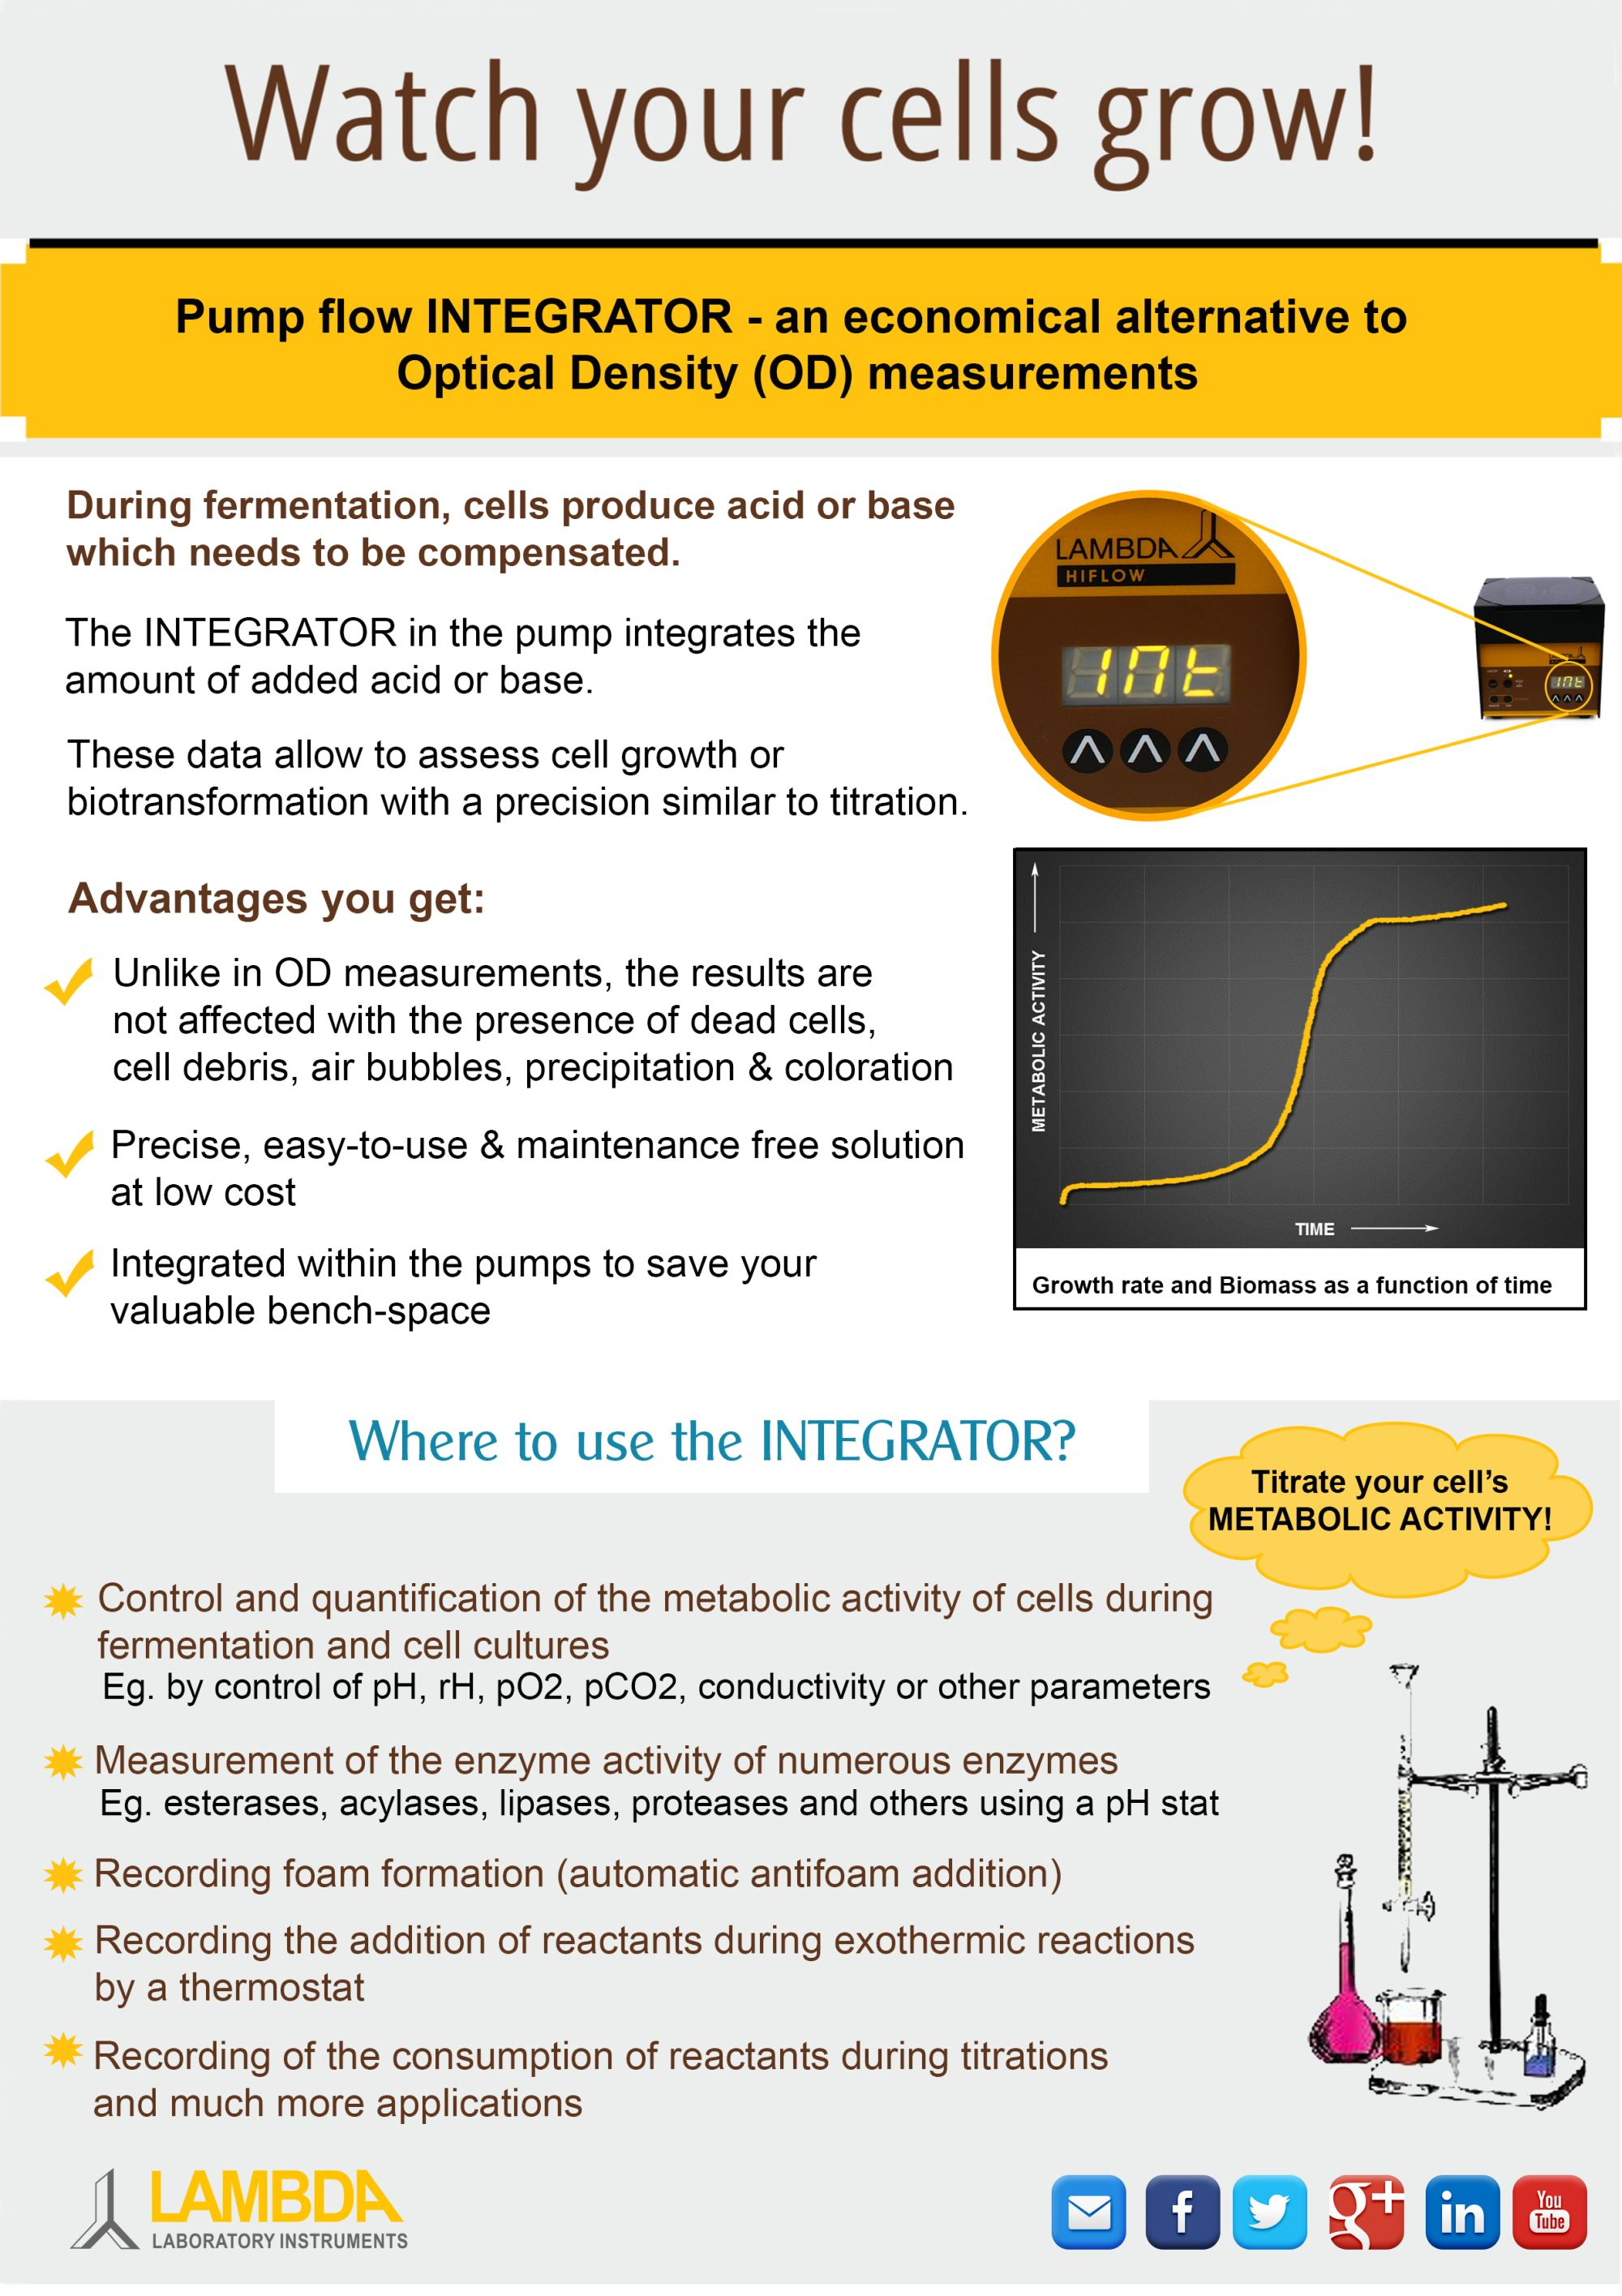 Integrator replaces OD (Optical density measurement)